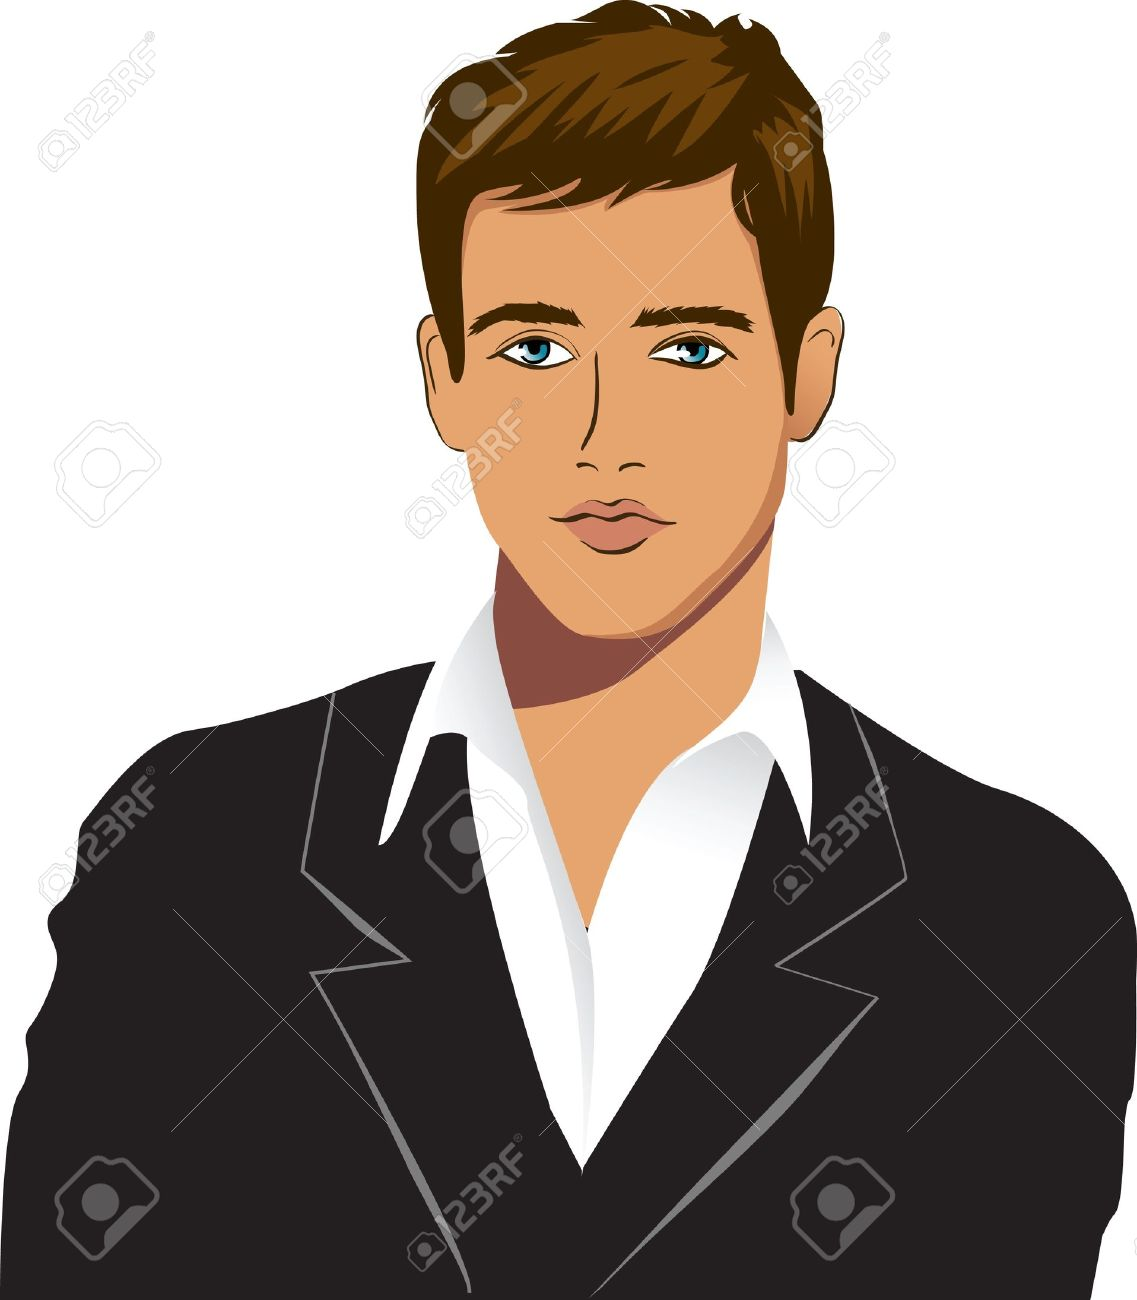 Free clipart handsome man.